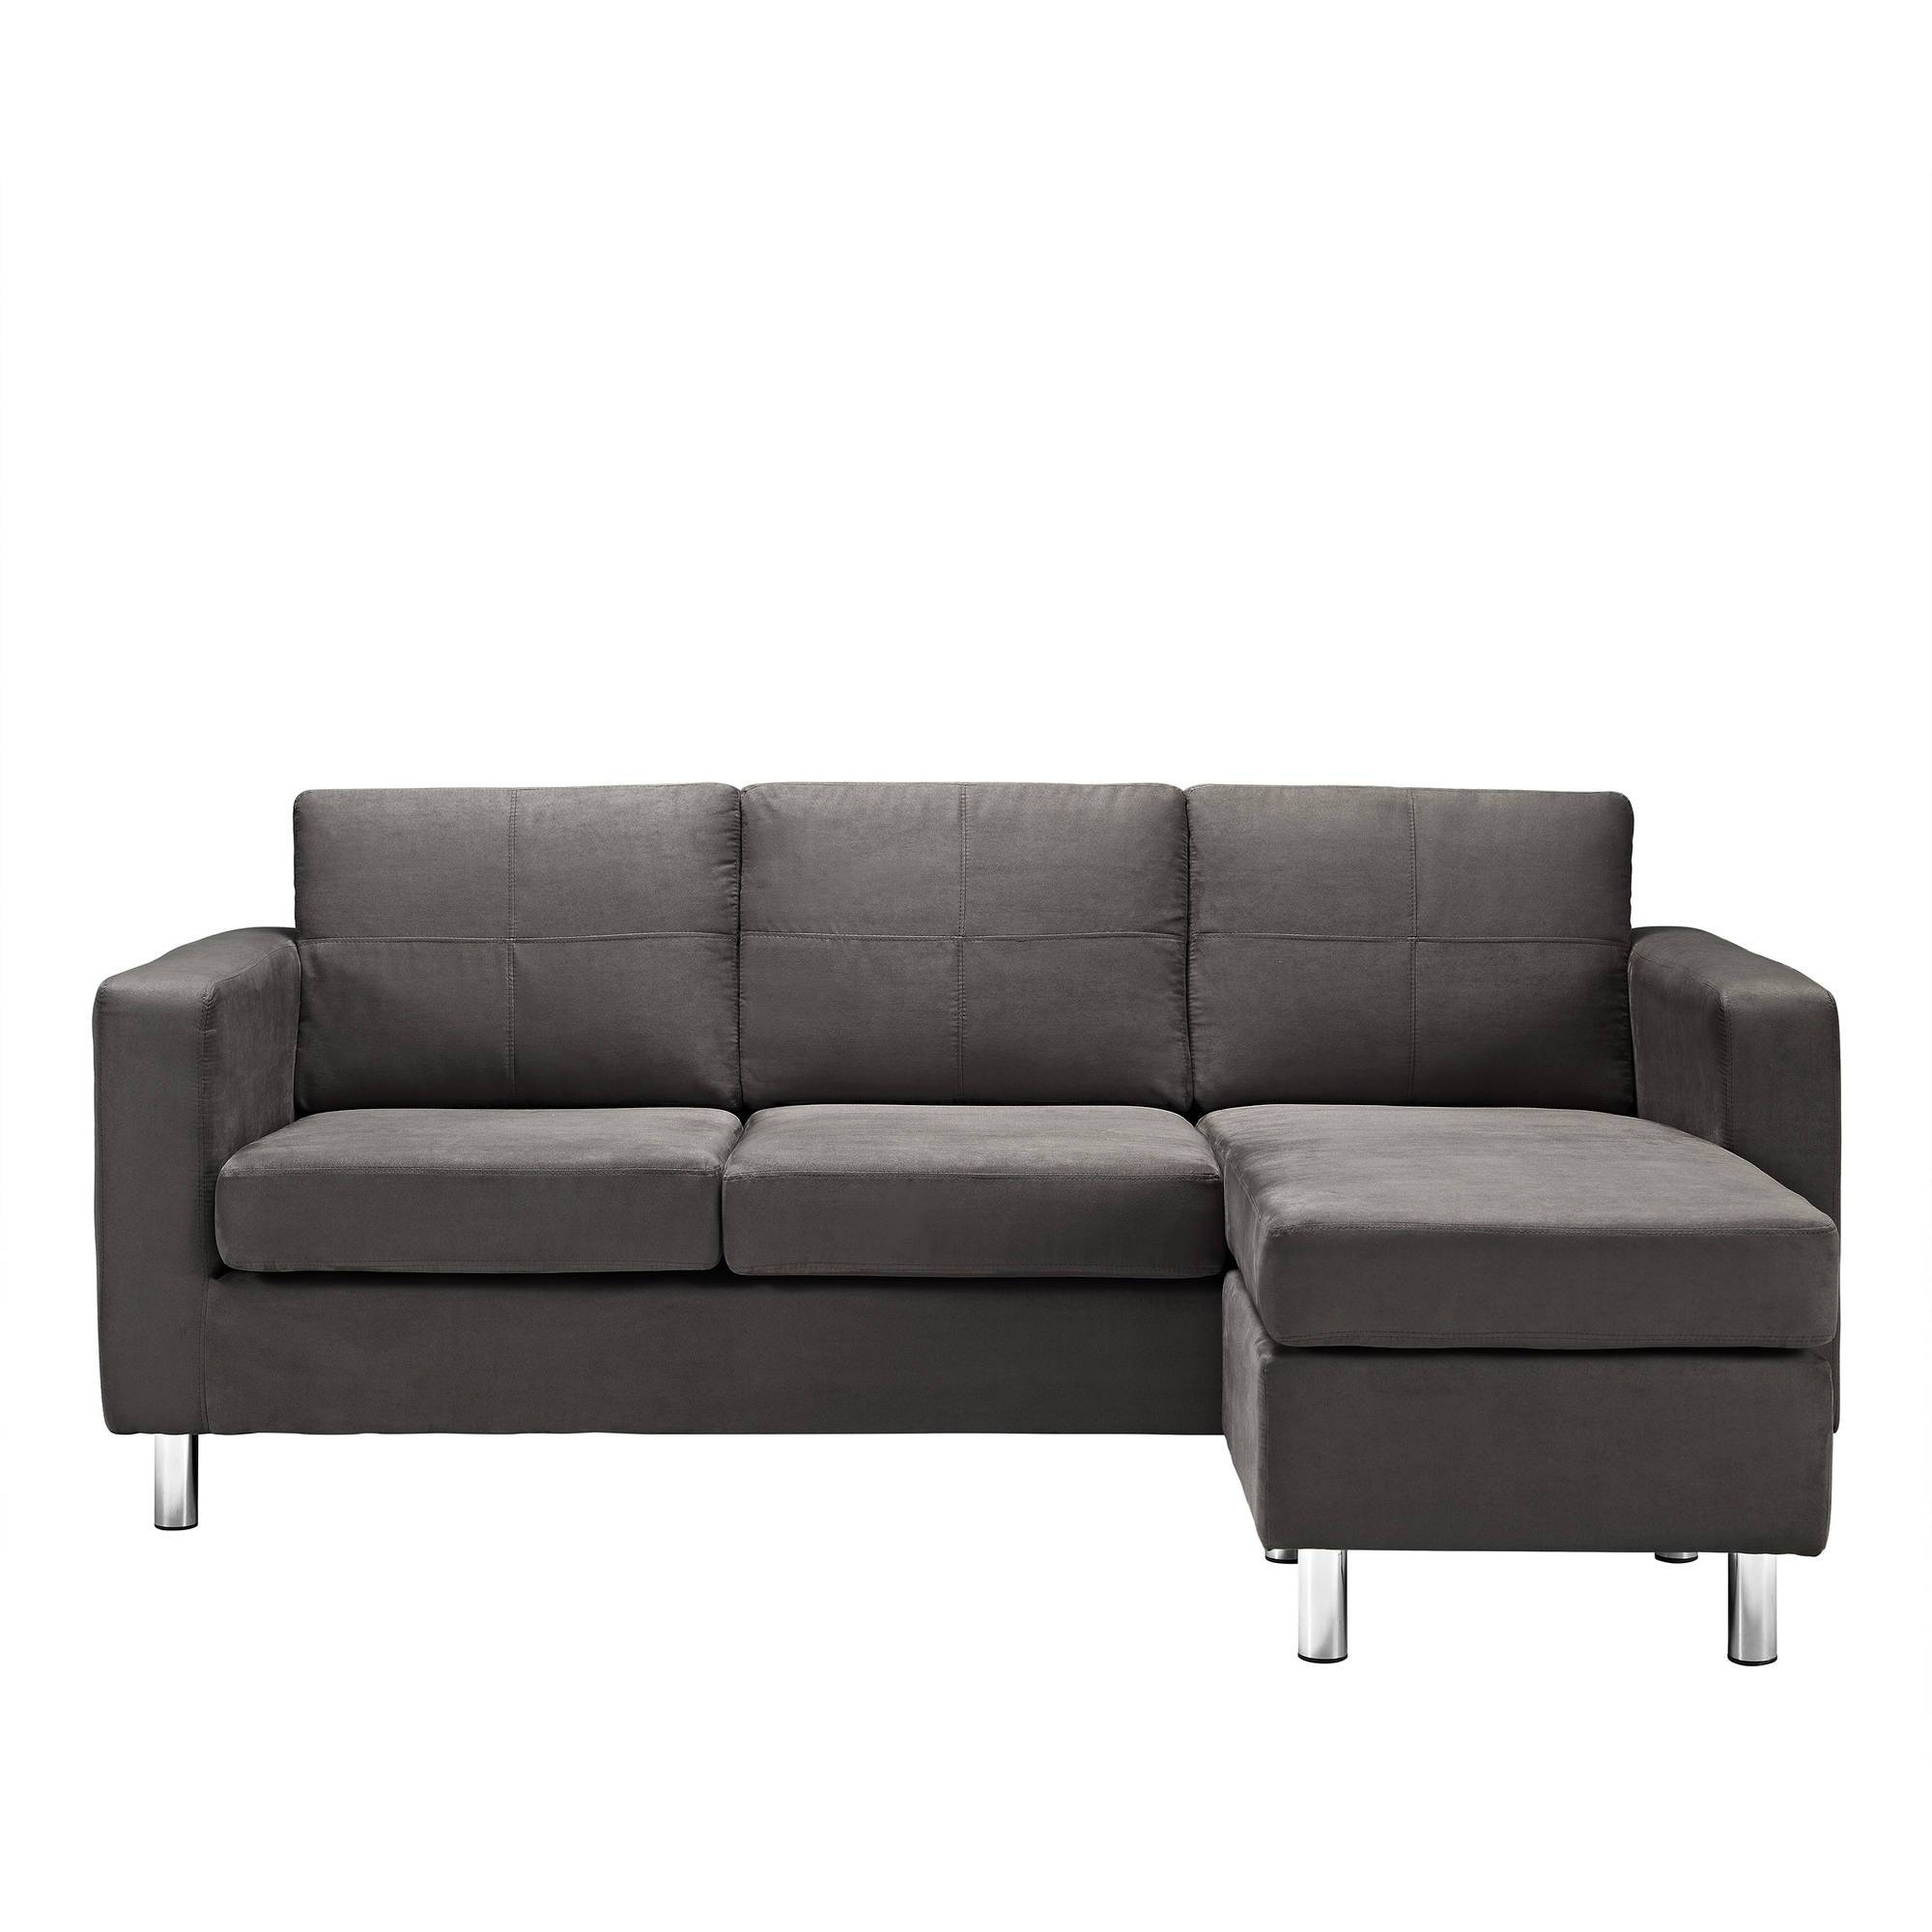 Dorel Living Small Spaces Configurable Sectional Sofa, Multiple Inside Small Spaces Configurable Sectional Sofas (View 5 of 15)